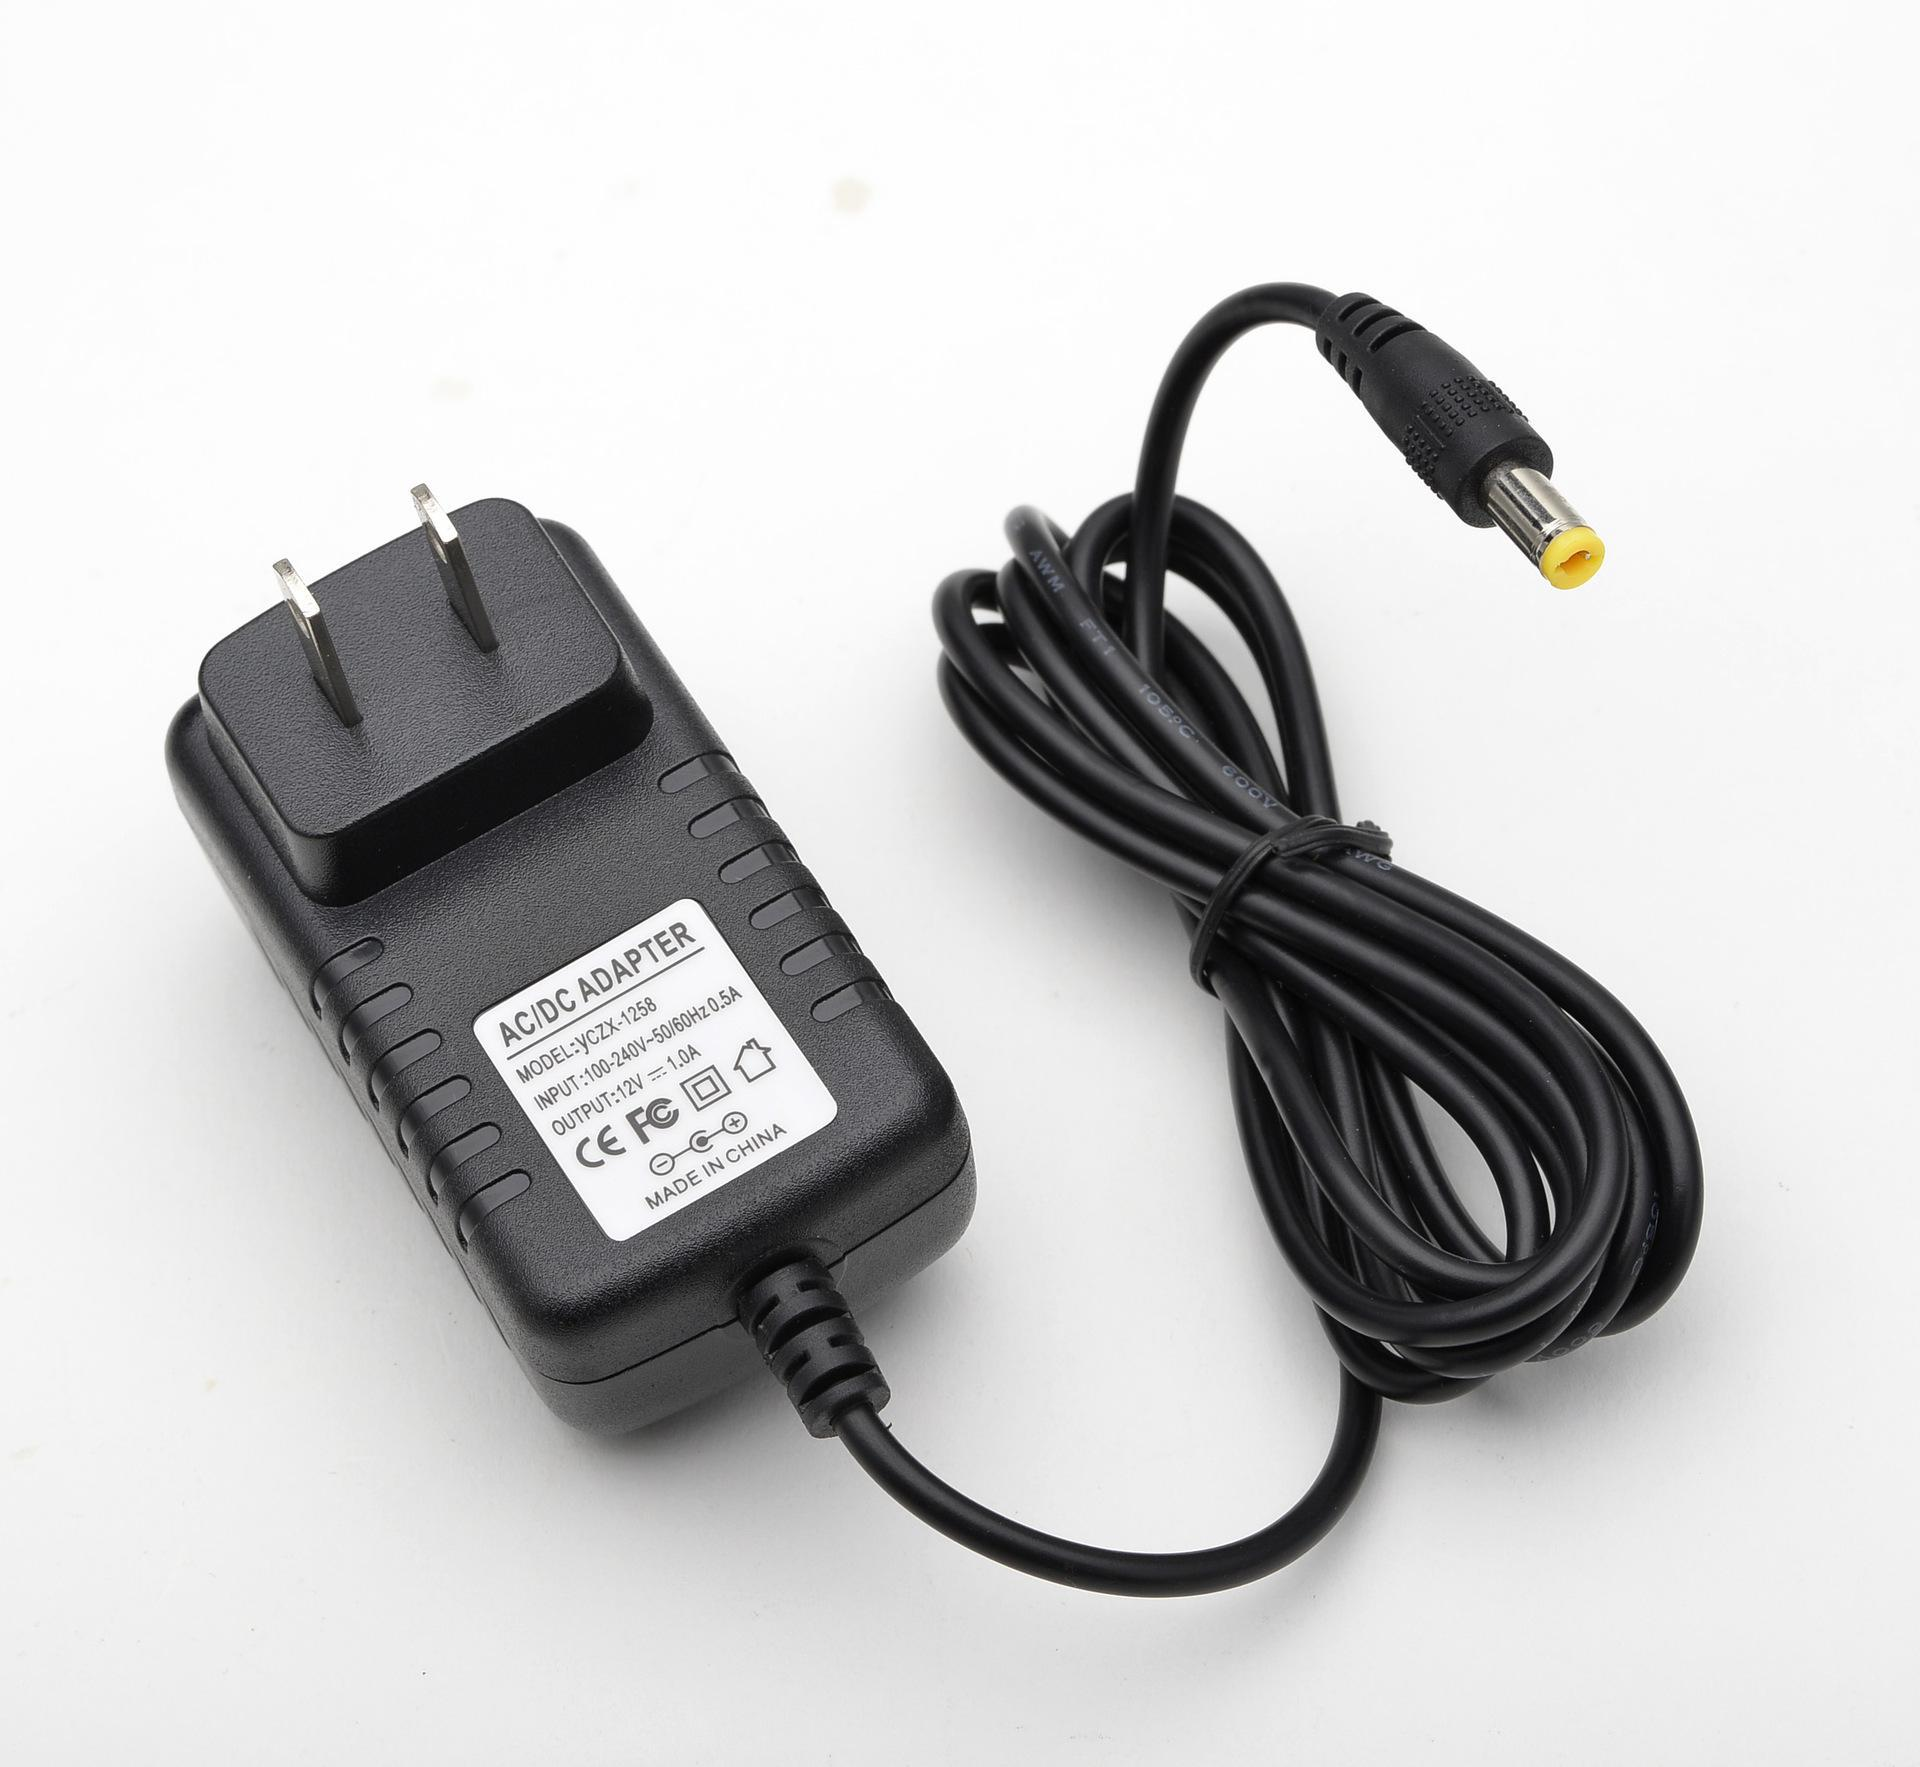 12V 2A AC/DC Adapter Power Supply for Security CCTV DVR Camera US dc 12v 5a ac adapter cctv power supply adapter box 1 to 8 port for the cctv surveillance camera system abs plastic